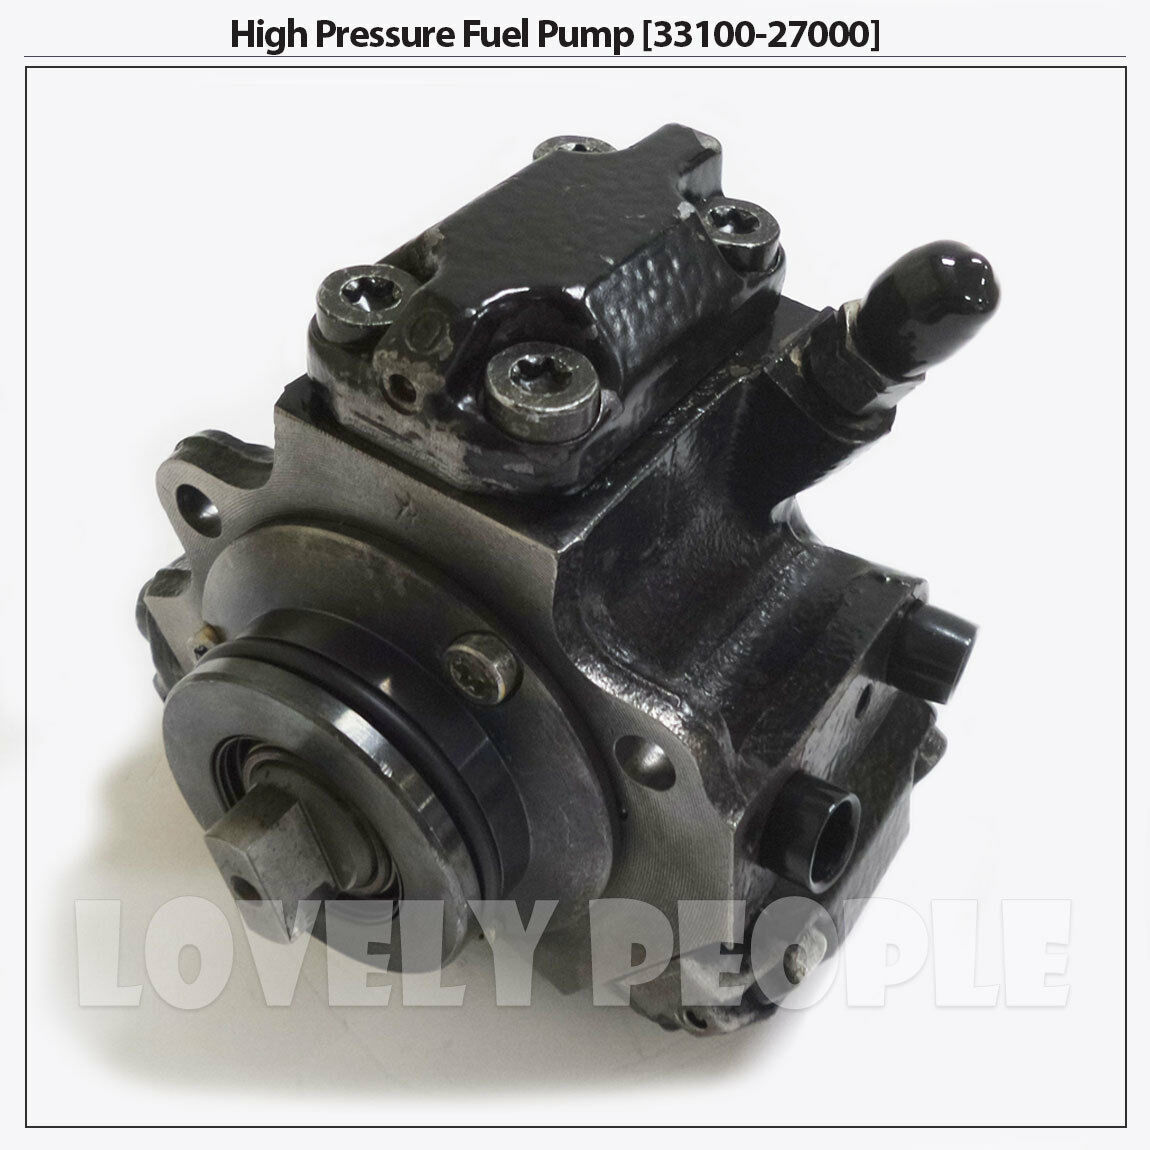 Diesel Fuel High Pressure Pump 33100 27000 for Hyundai Santa